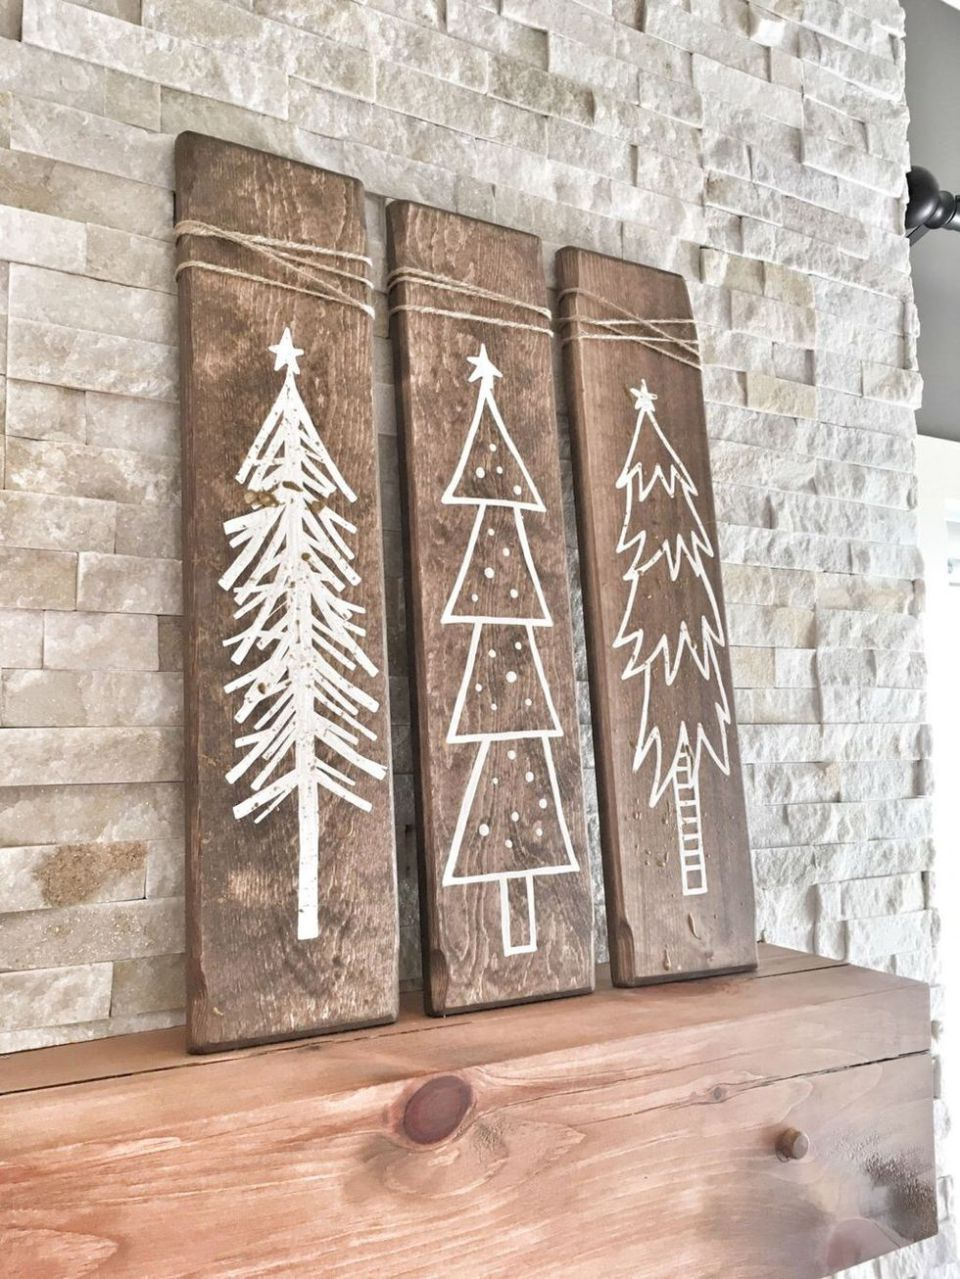 Inspiring Creative Christmas Decorations Ideas 9 | Wooden ...